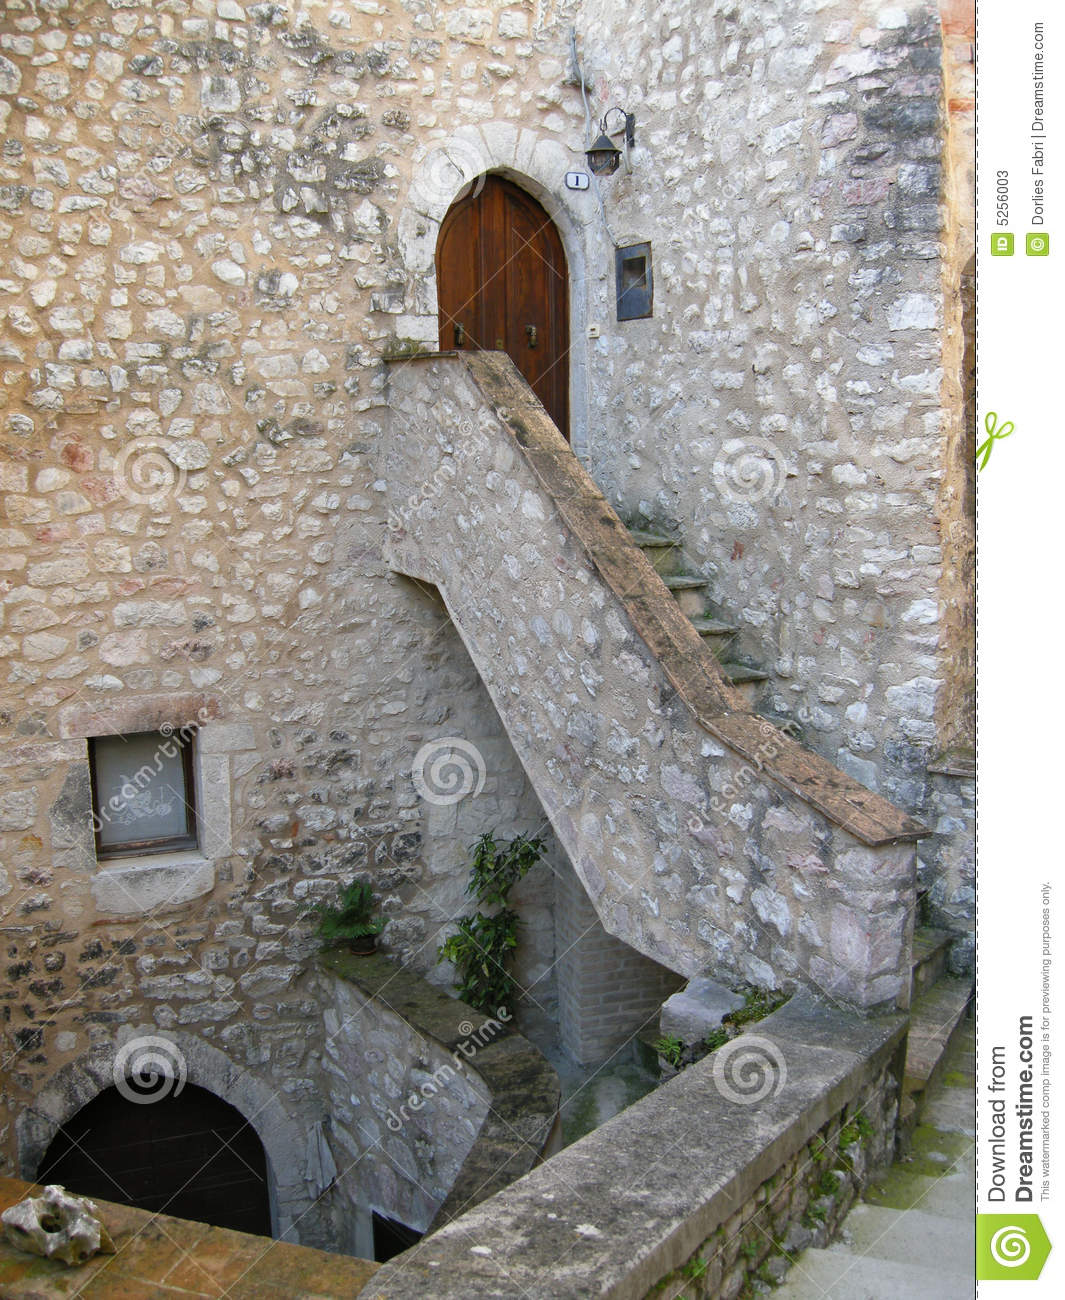 Staircase to door